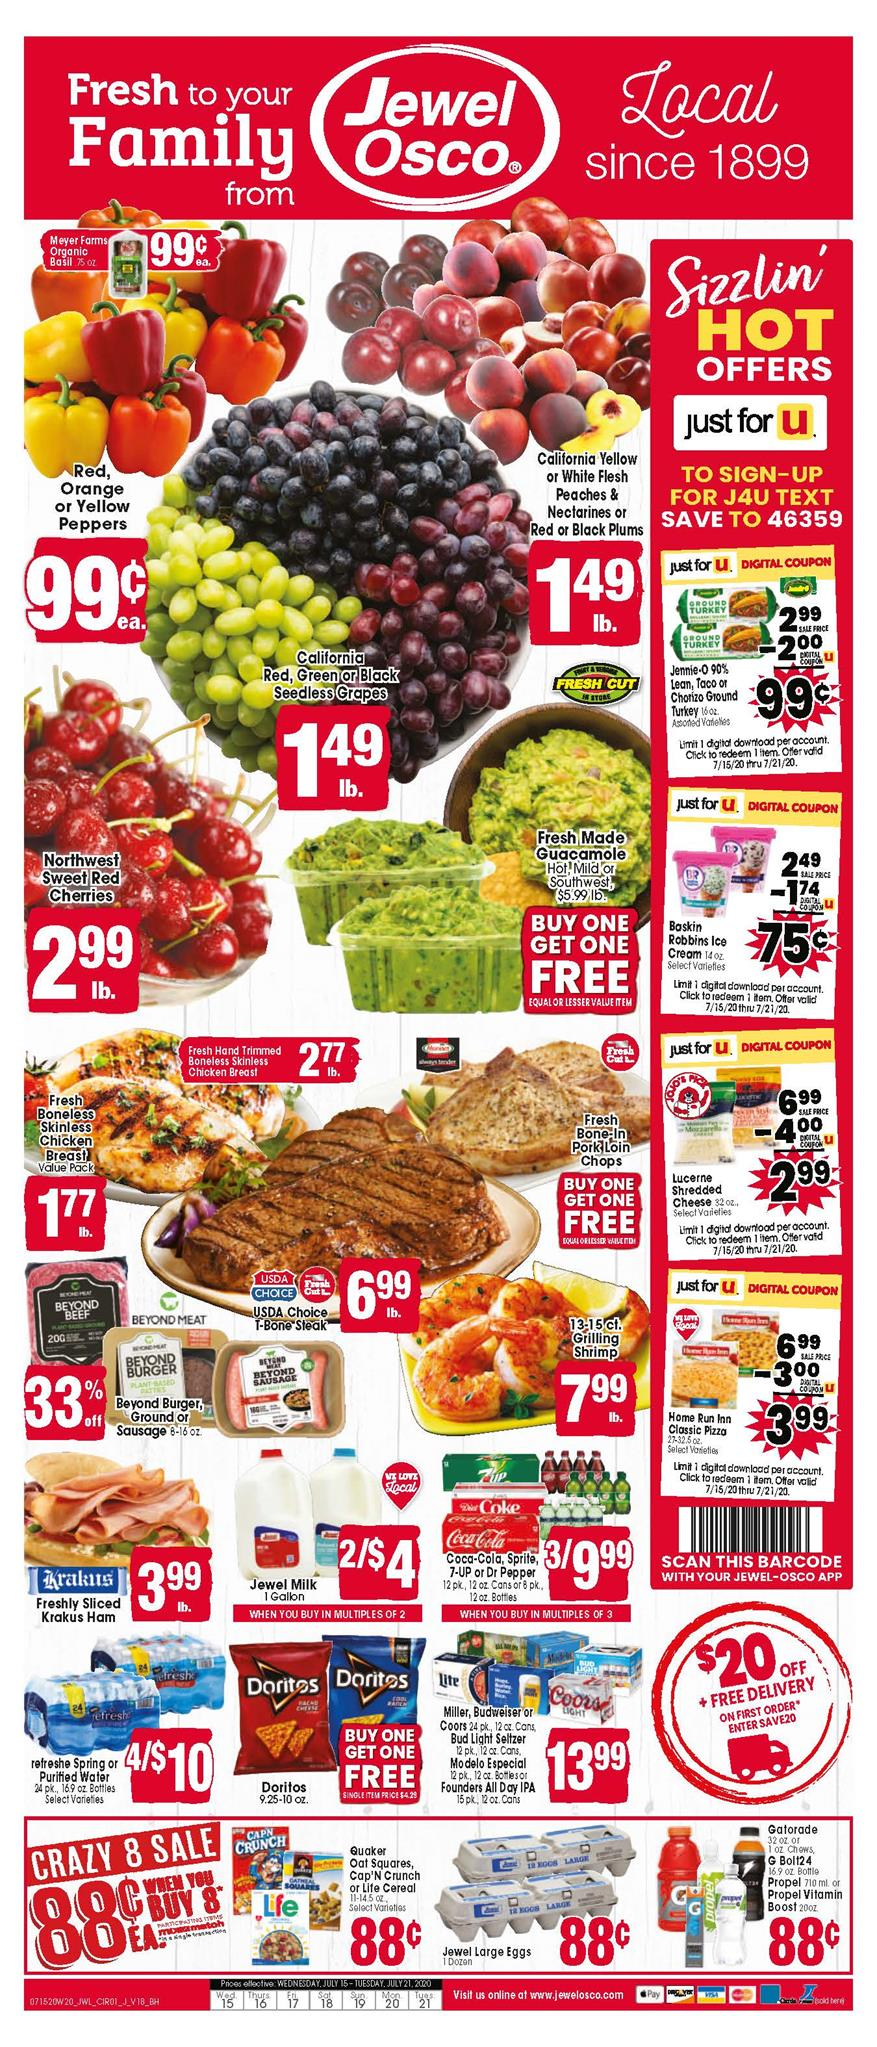 jewel osco mid july weekly ad valid from jul 15 21 2020